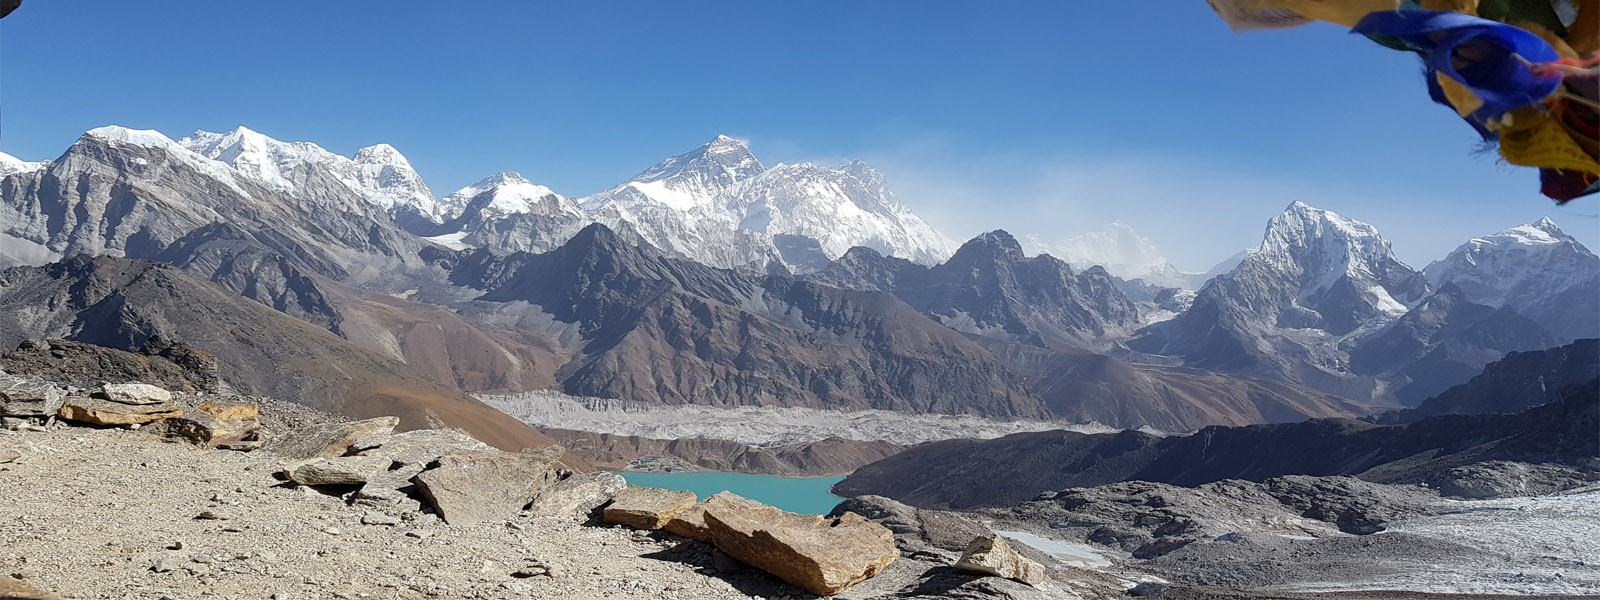 Gokyo Ri Peak Views from Gokyo Lake